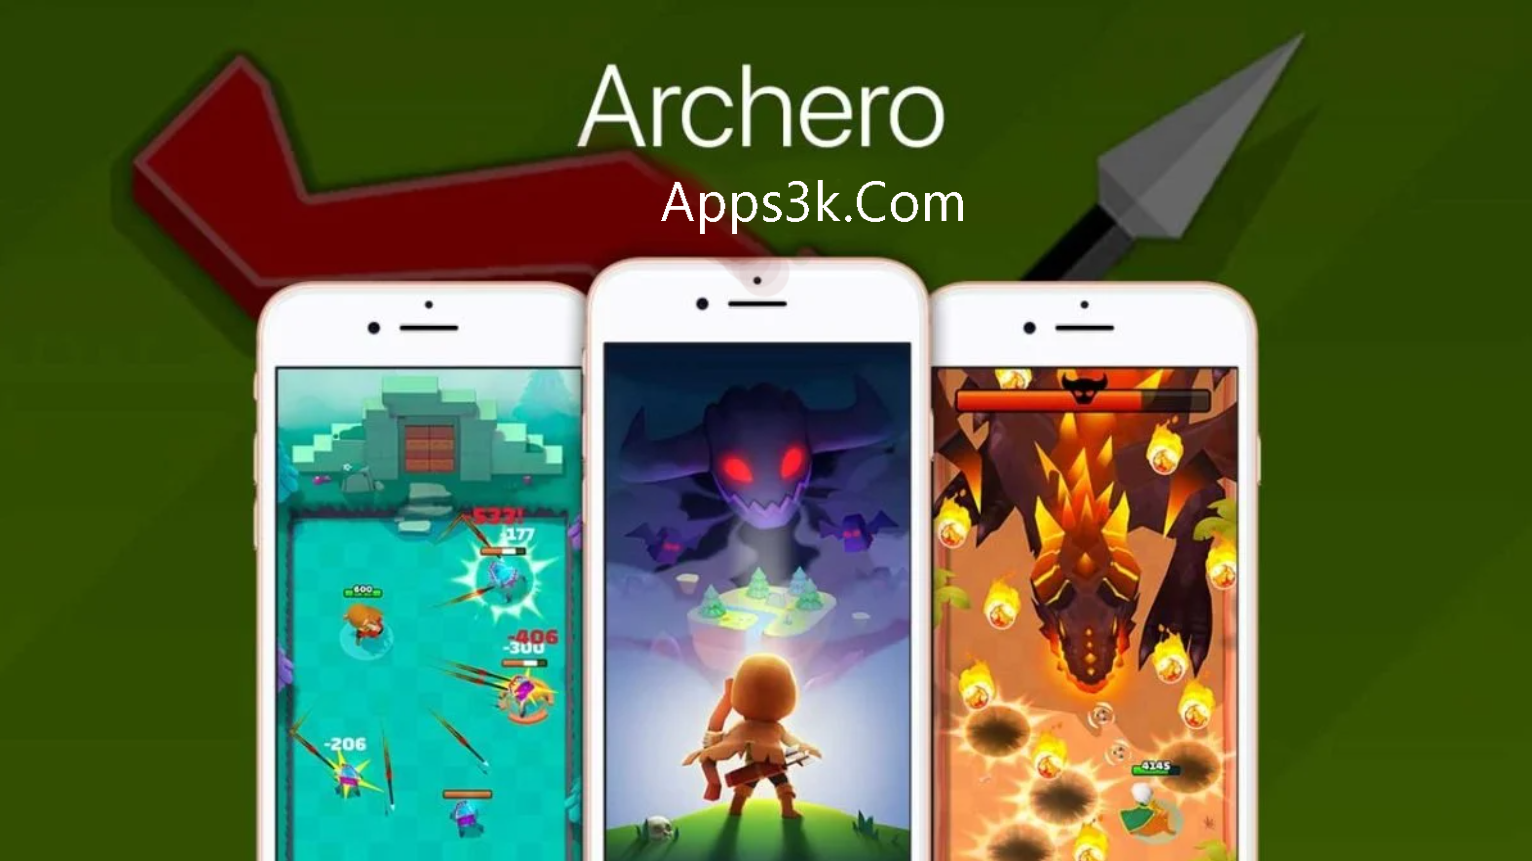 Archero APK Download